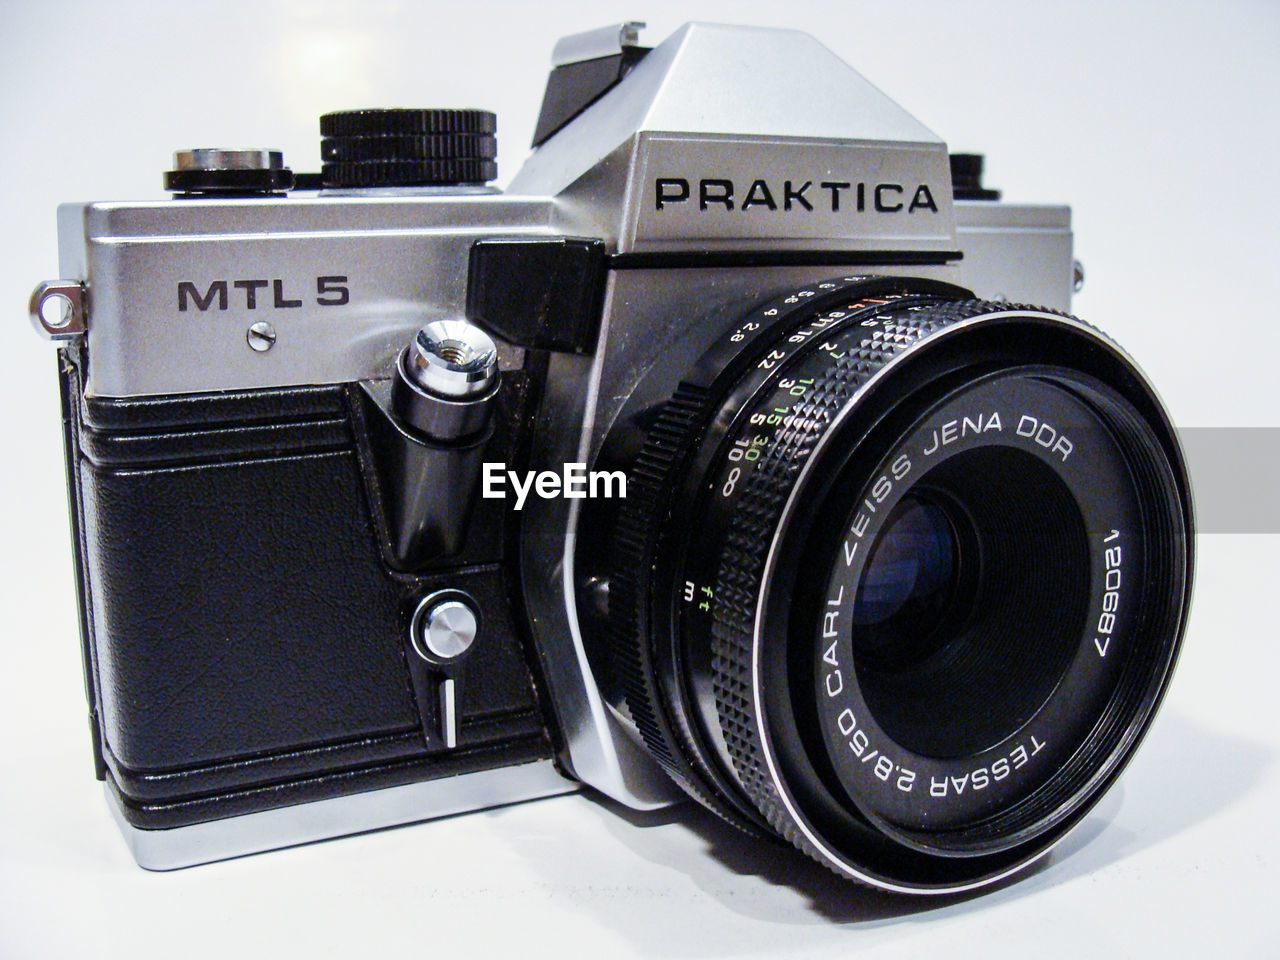 camera - photographic equipment, photography themes, lens - optical instrument, old-fashioned, camera, technology, retro styled, no people, vintage, digital camera, slr camera, close-up, indoors, white background, digital single-lens reflex camera, camera flash, day